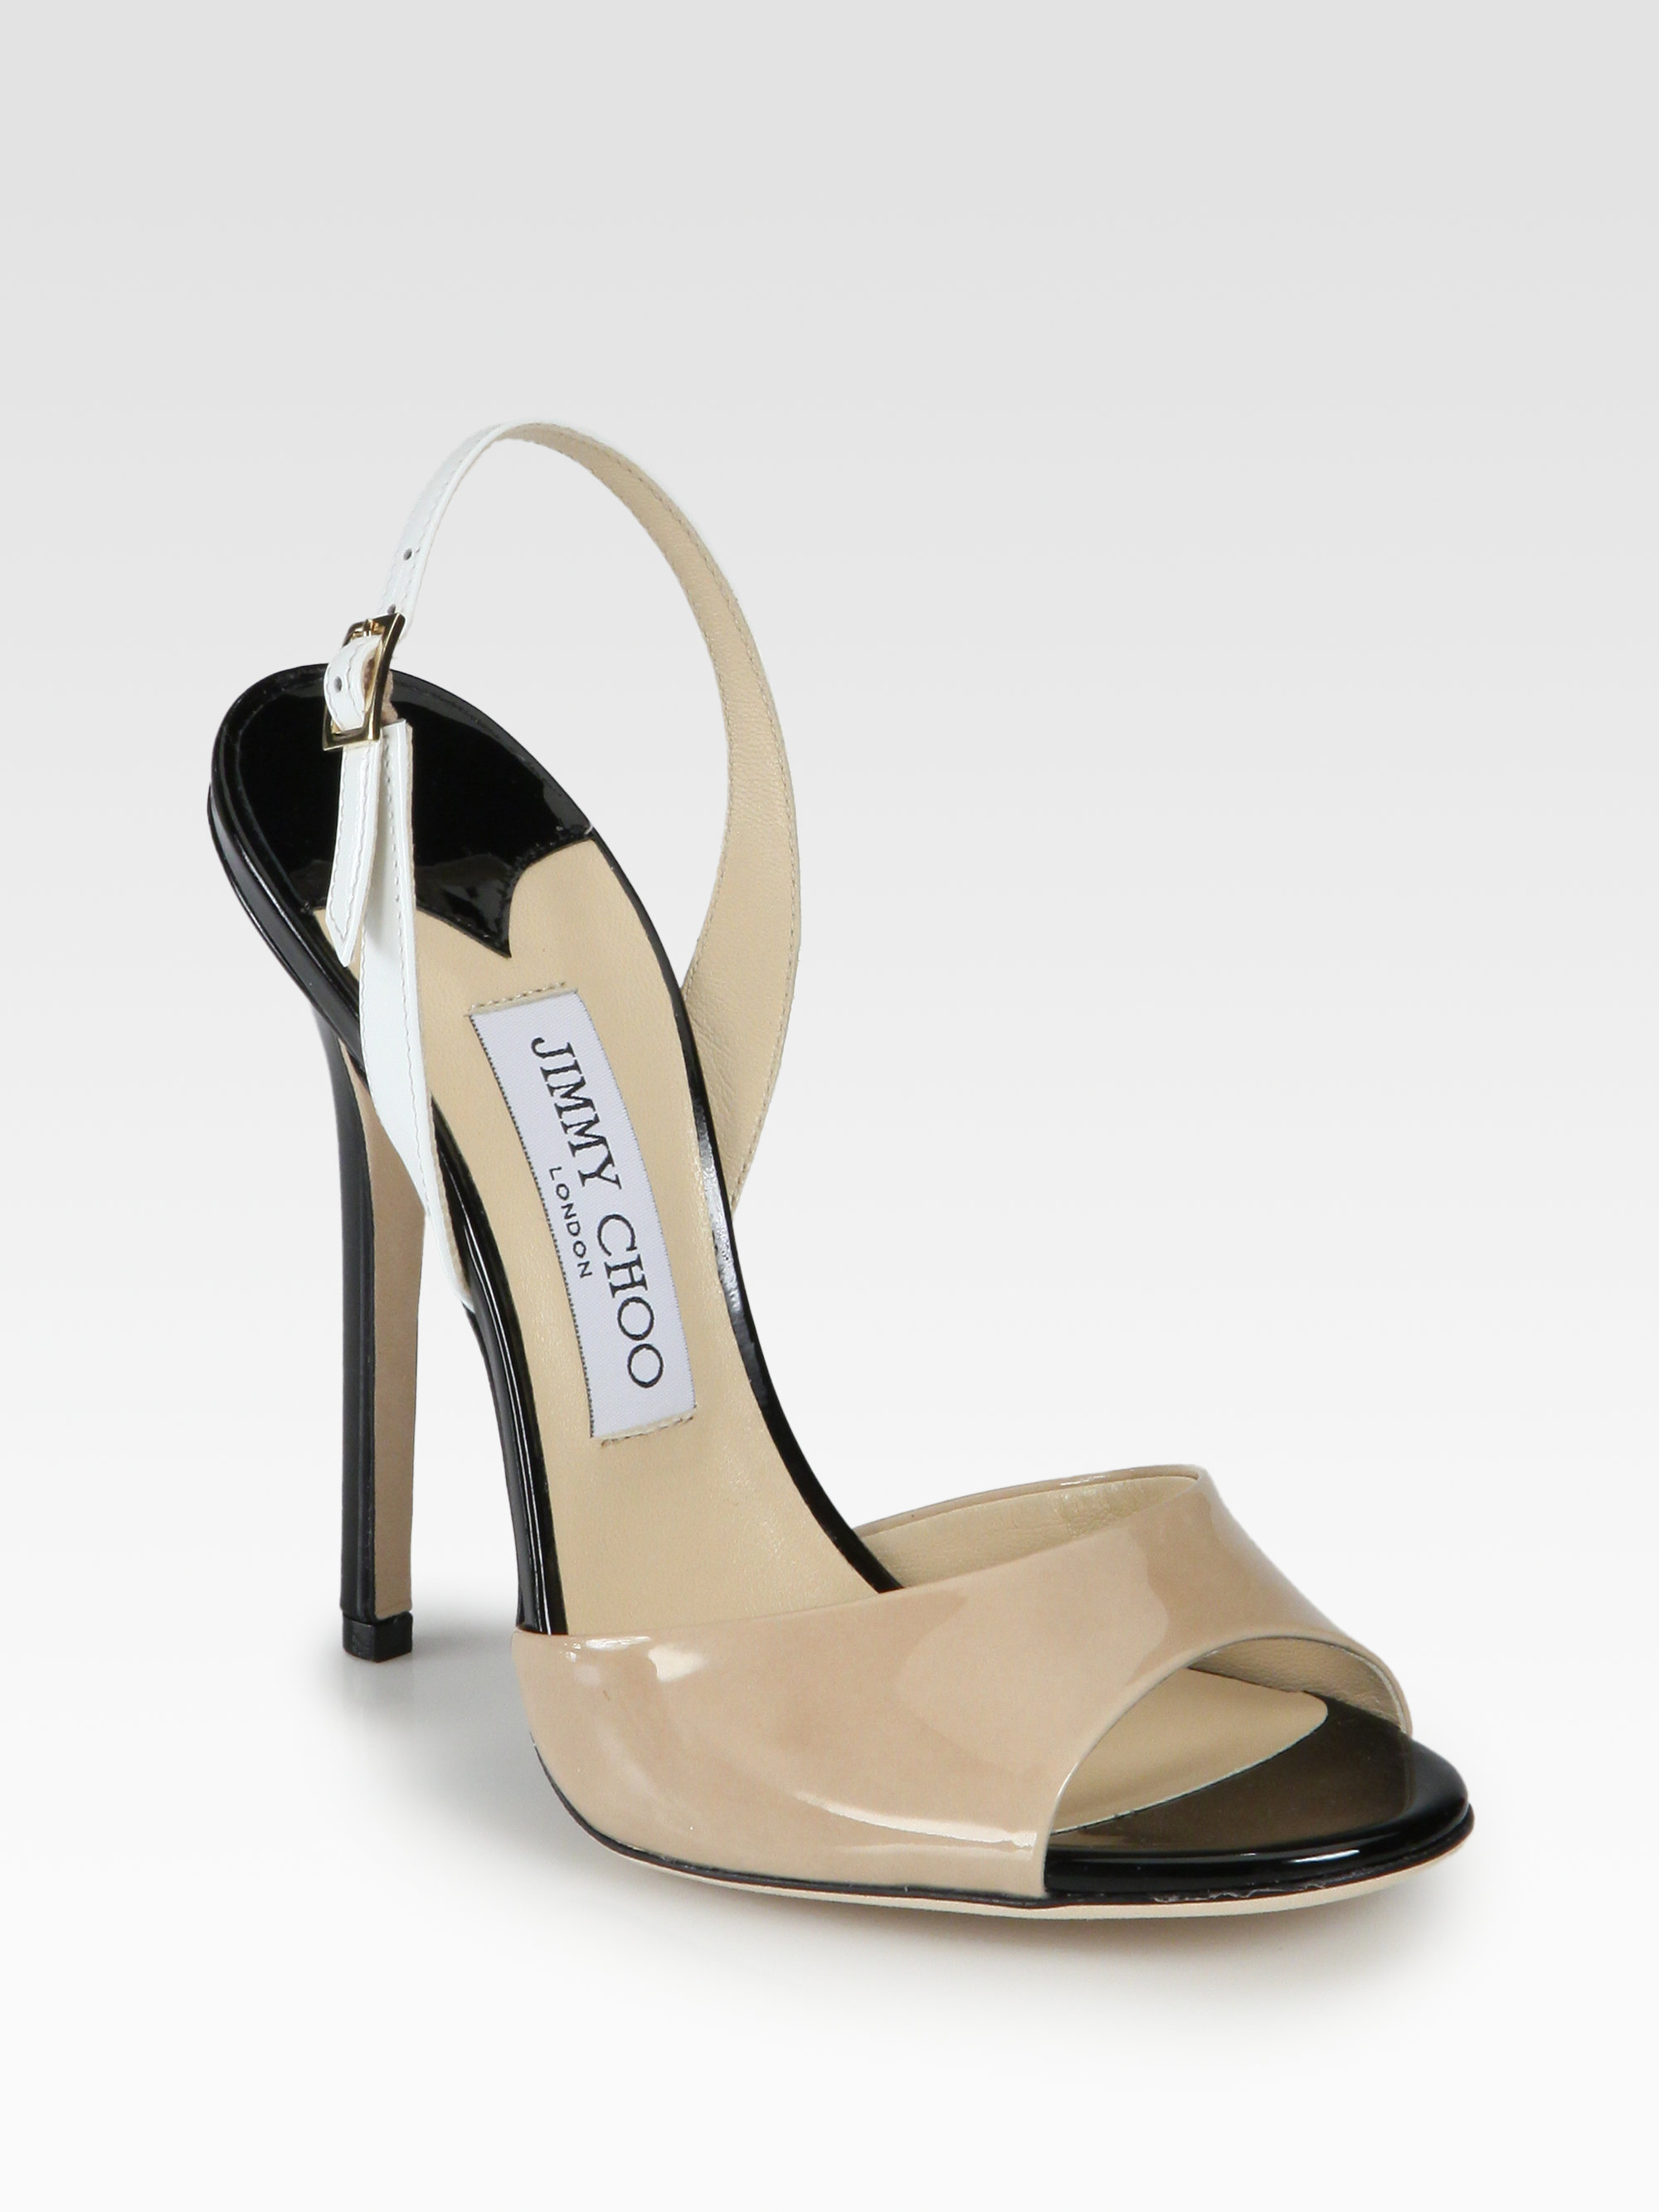 discount cheap Jimmy Choo Slingback Leather Sandals cheap sale many kinds of cheap price from china QbdGb